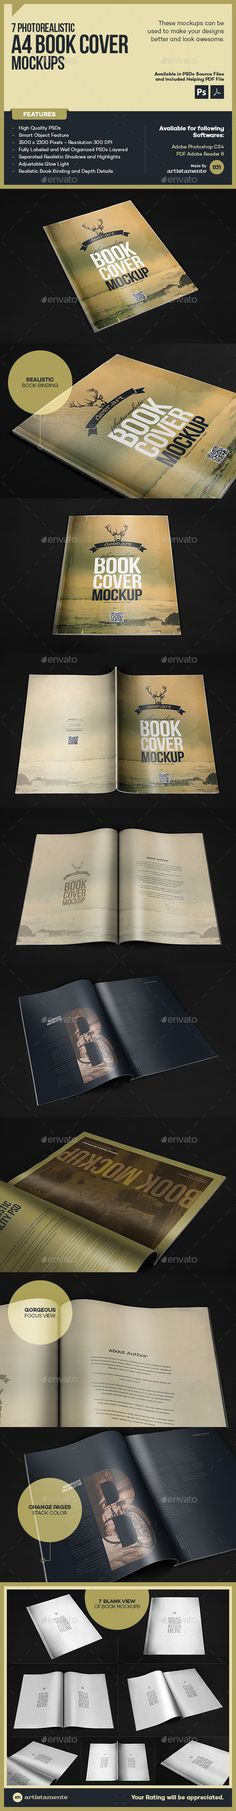 Photorealistic Book Mock-Up by artistamente PHOTOREALISTIC A4 BOOK COVER MOCKUPSMaking things More interesting and in effort to make your projects the best out there, artist